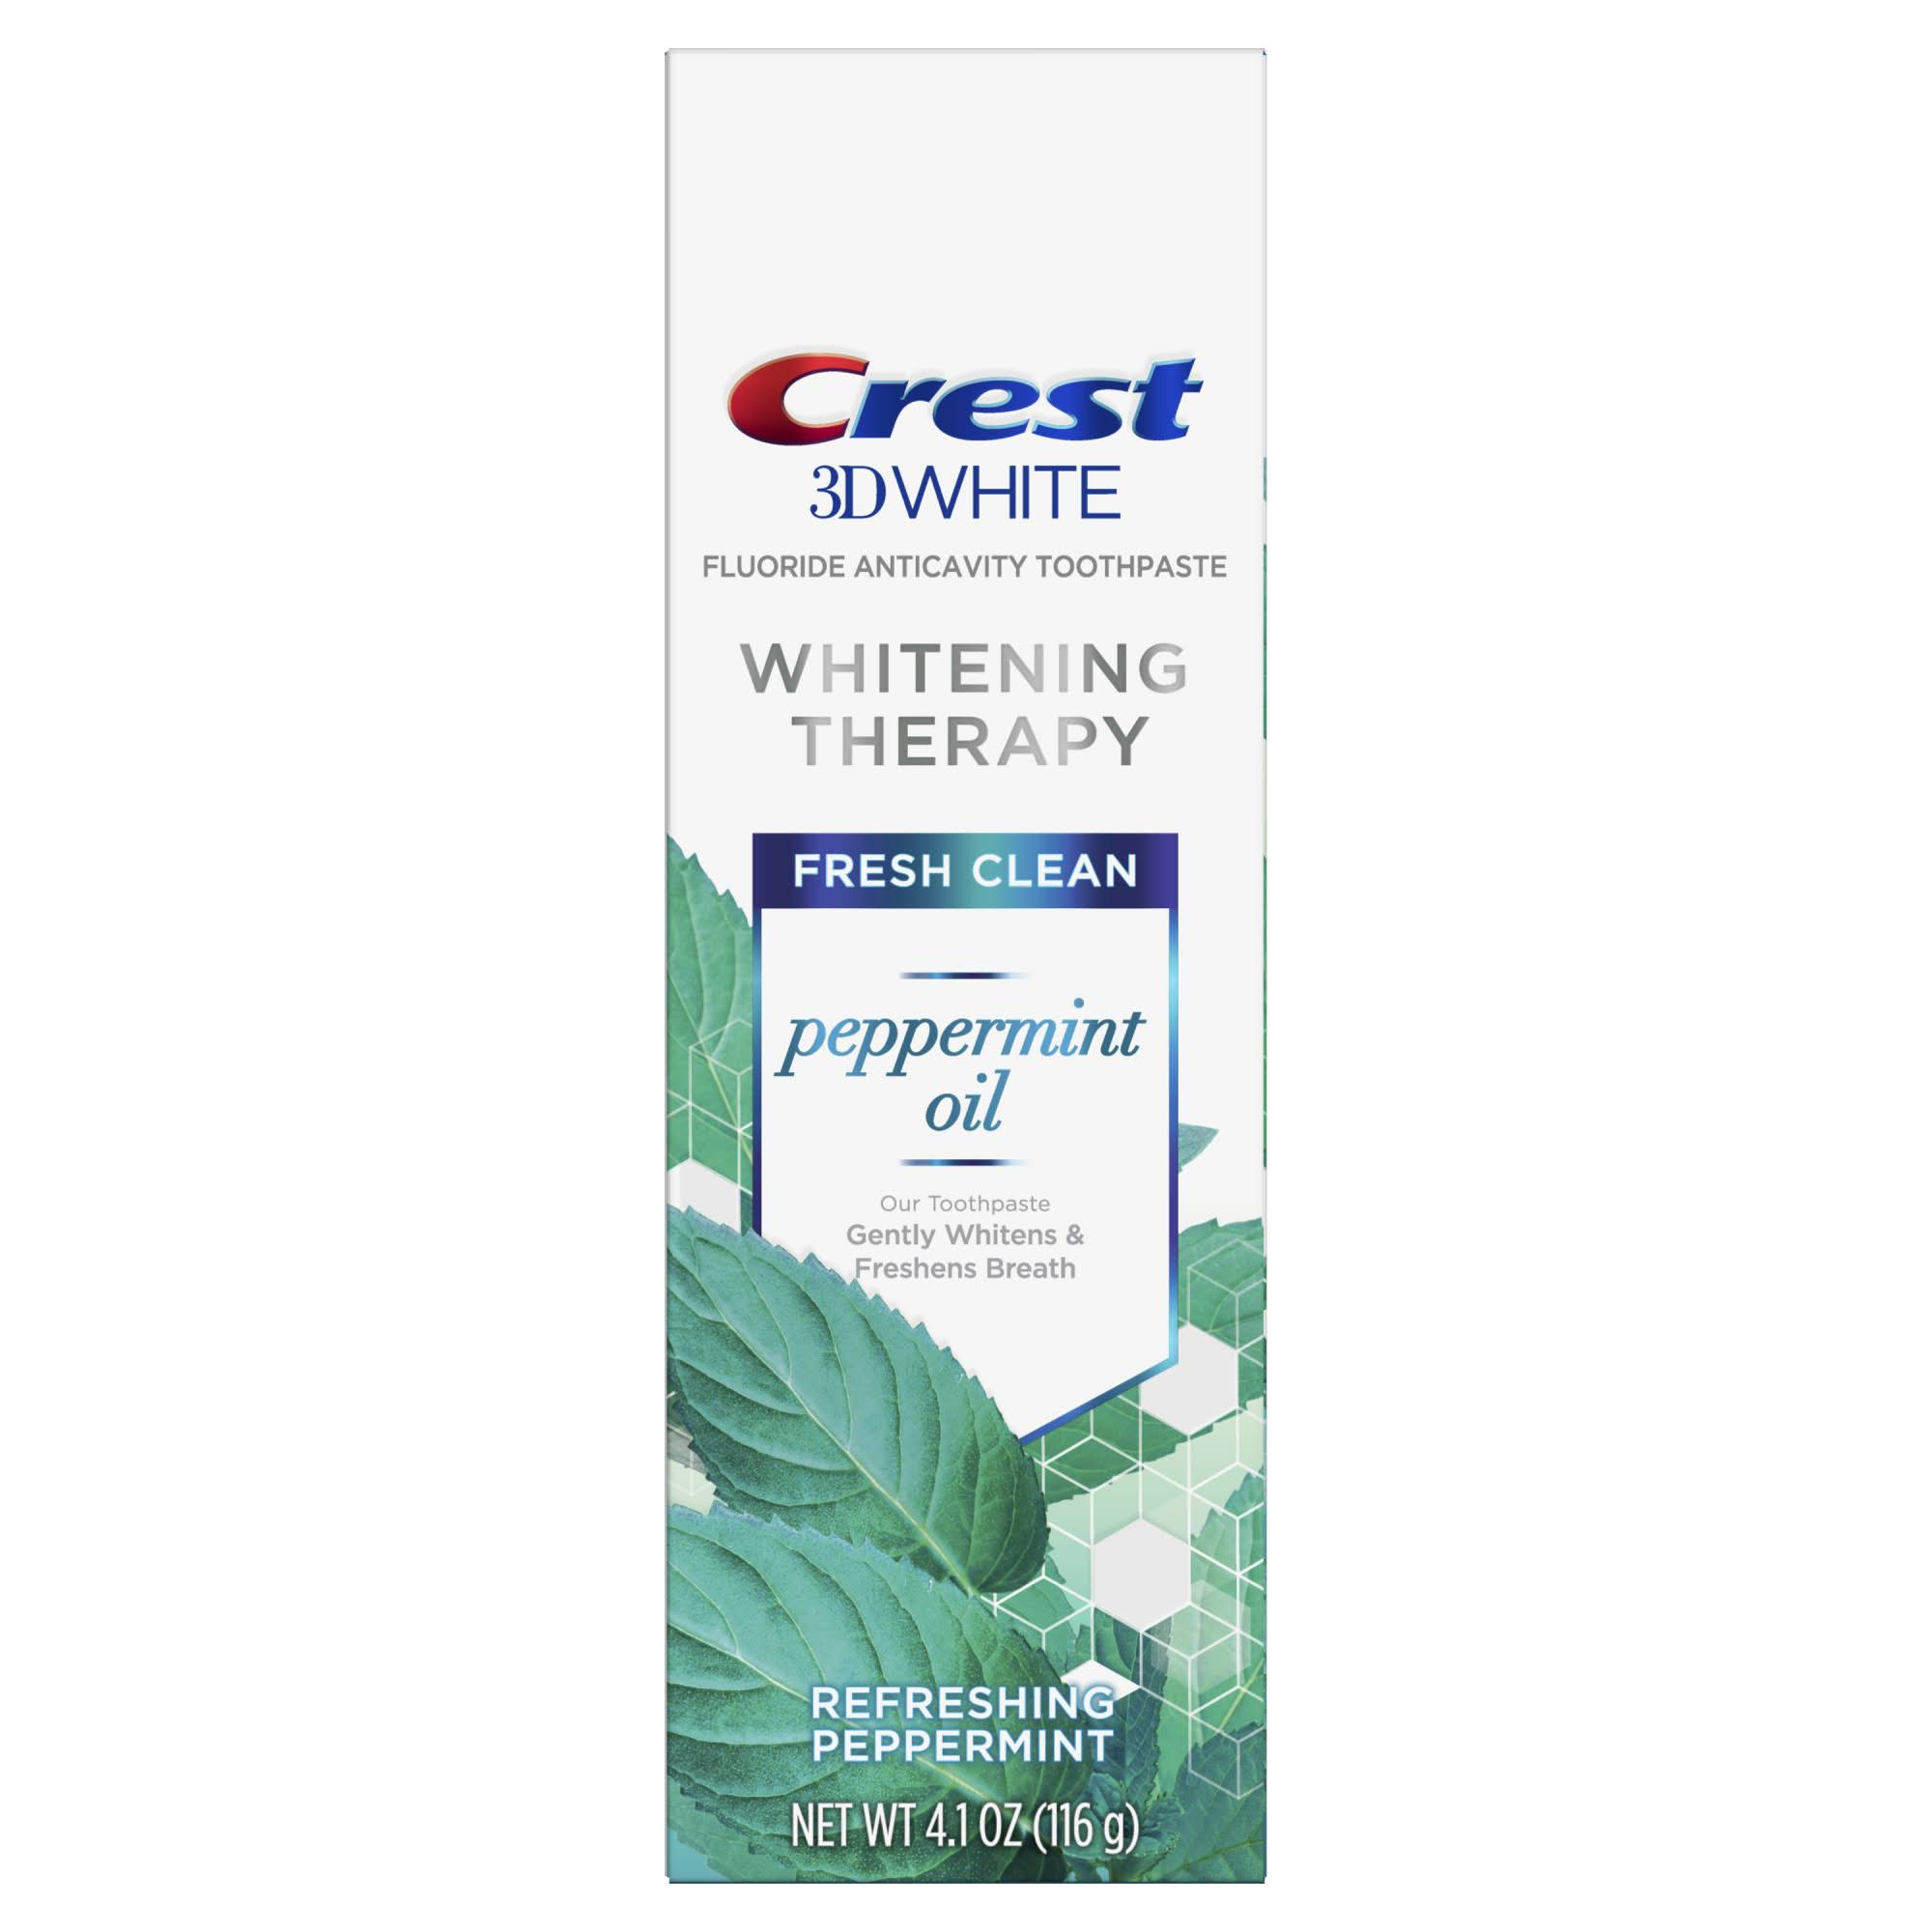 Crest 3D Peppermint Oil Whitening Therapy Toothpaste - 4.1oz